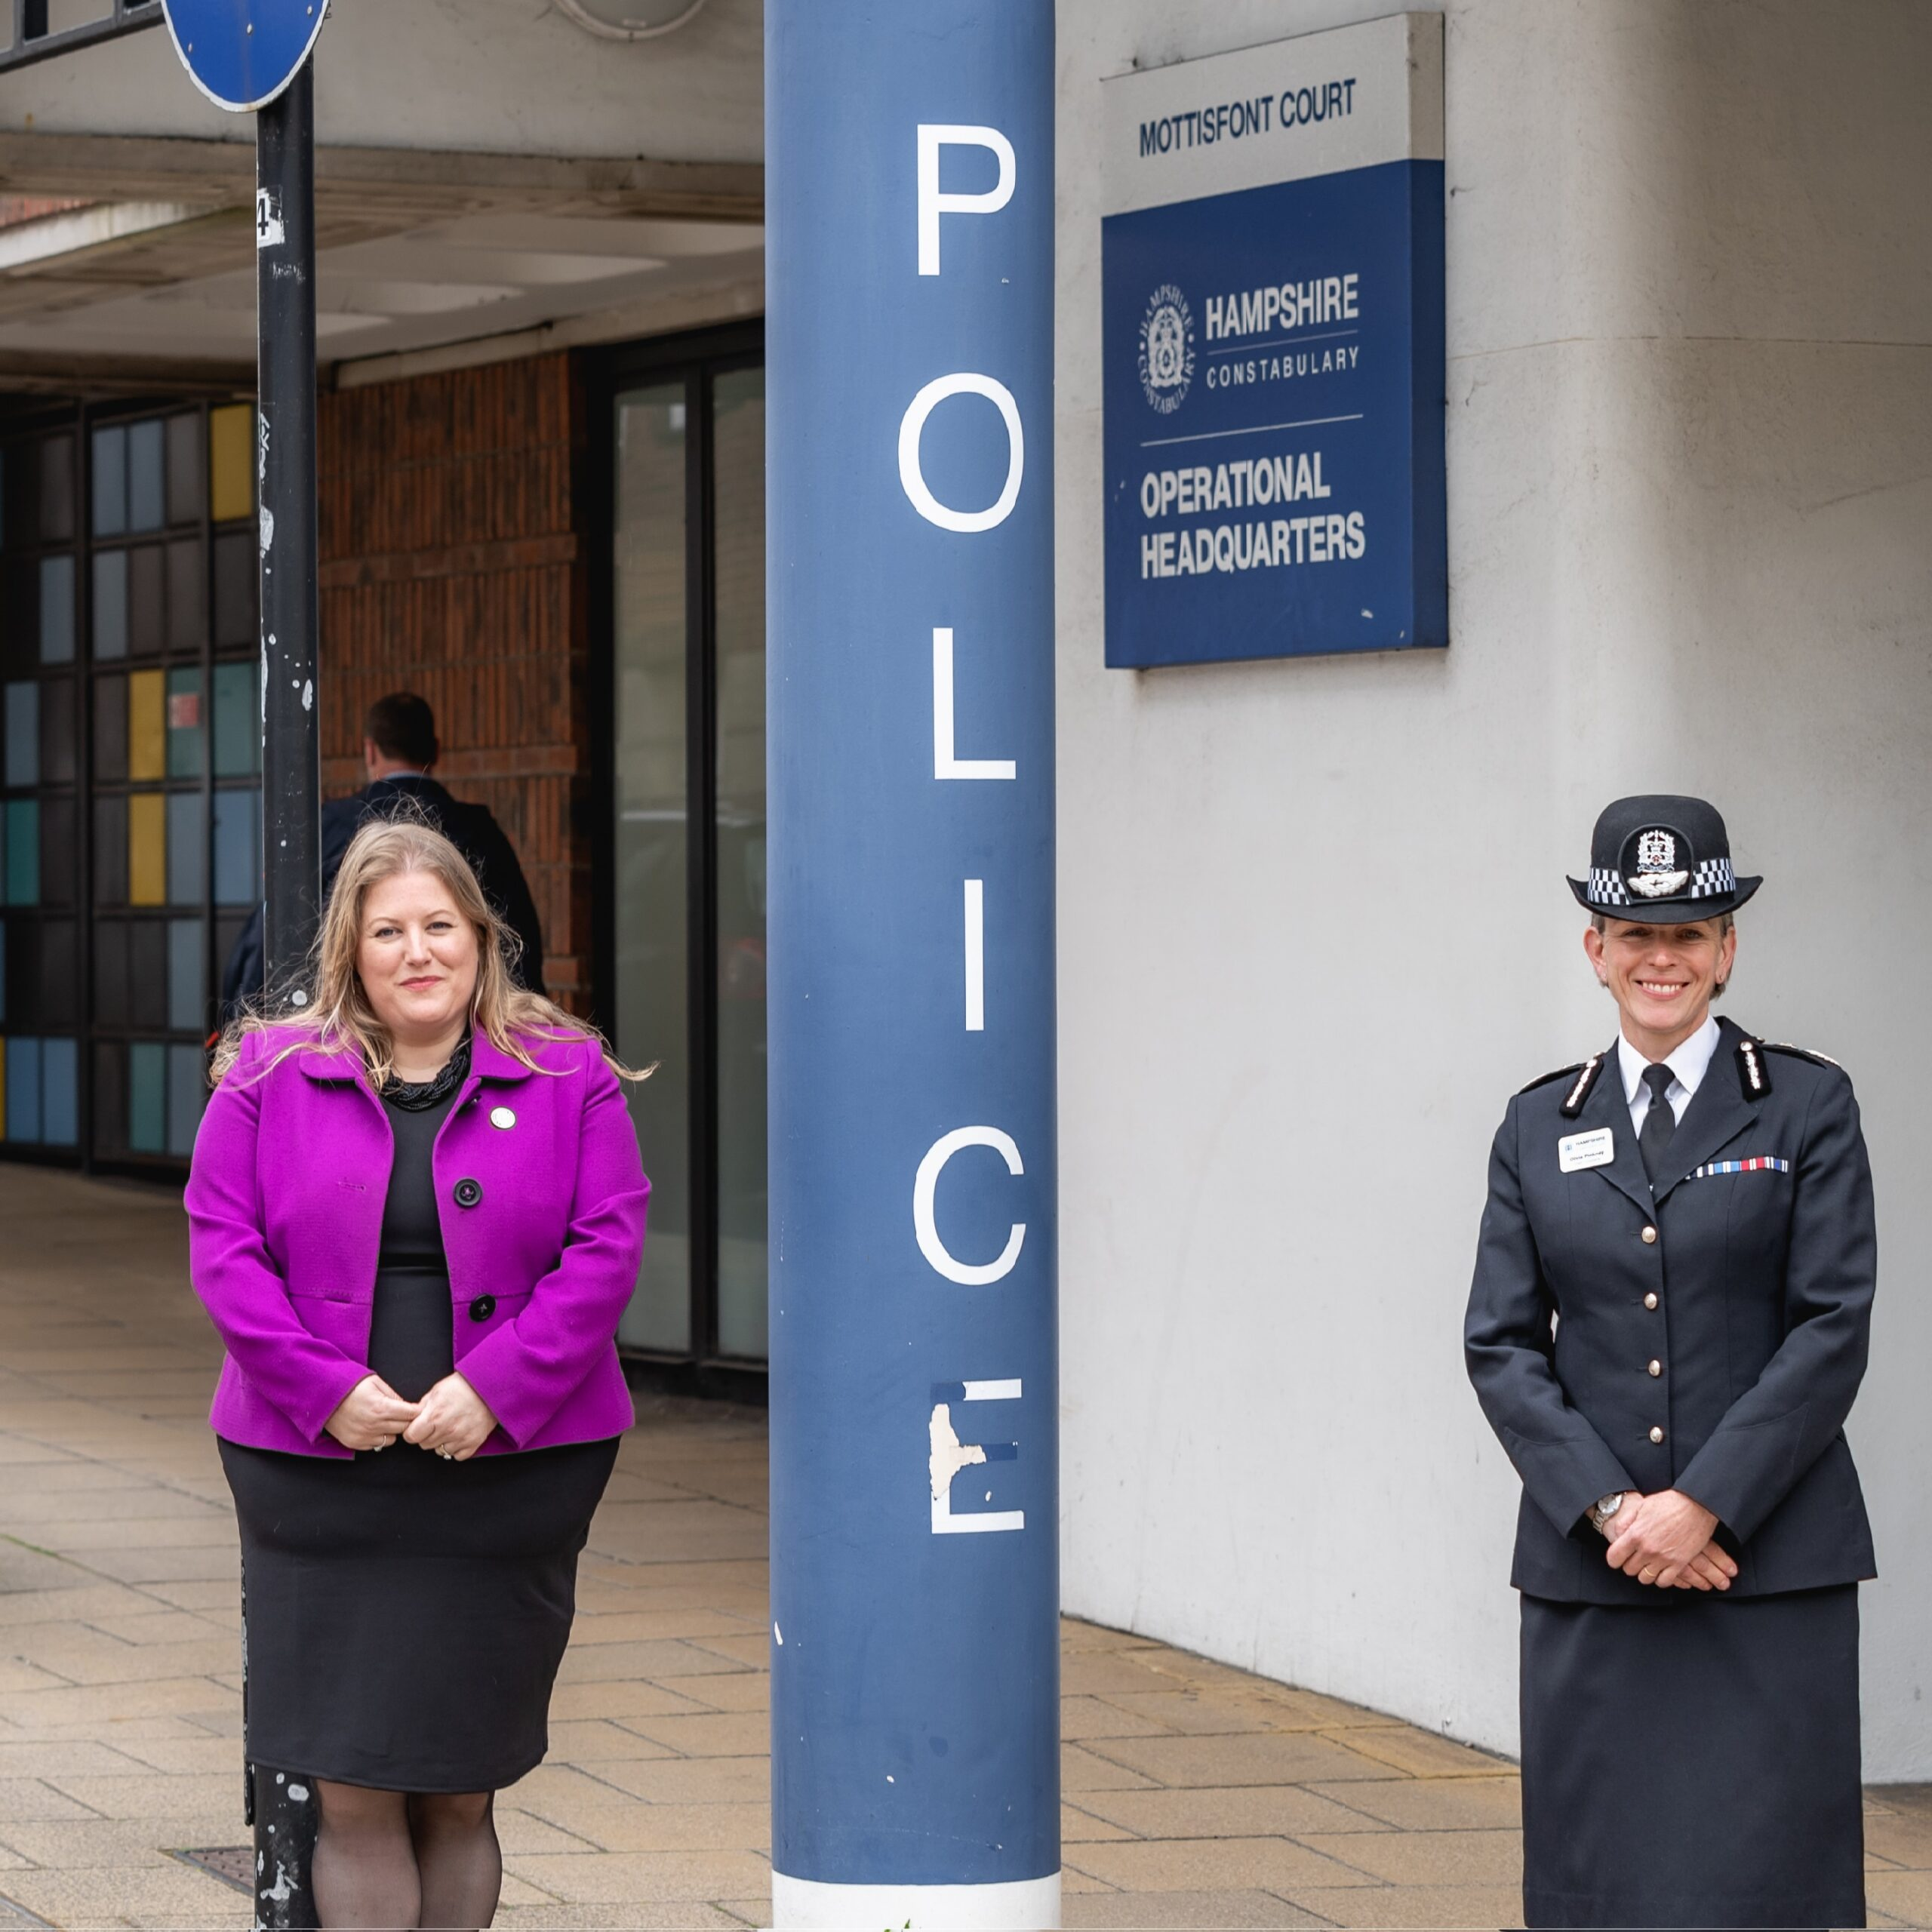 Public asked to send questions for first public scrutiny session with the Chief Constable